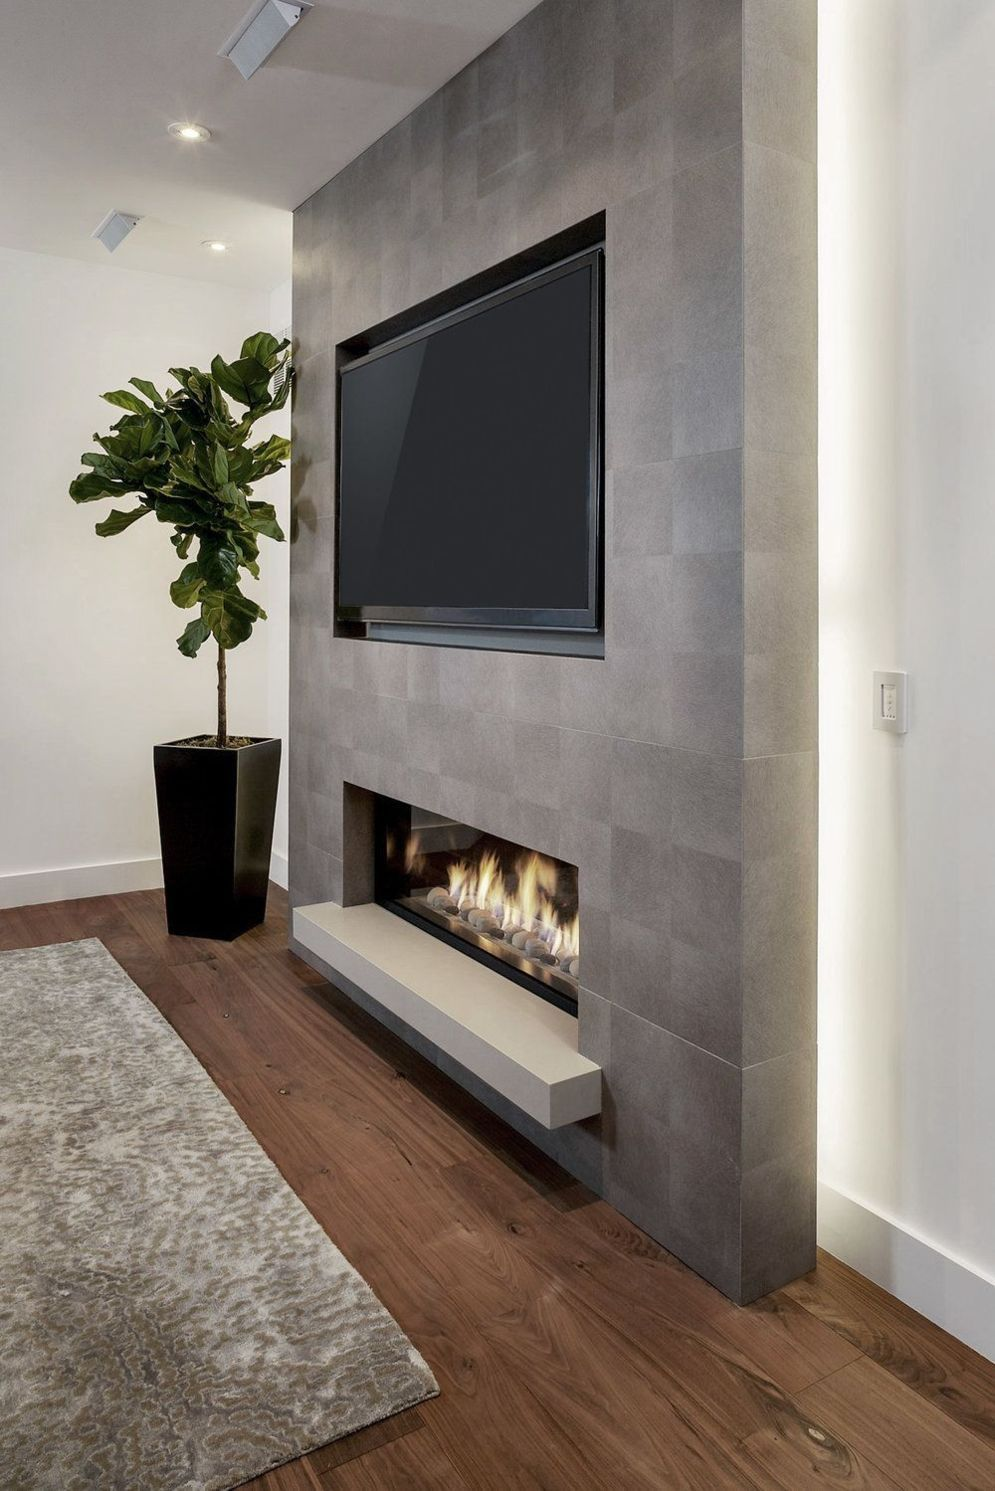 Best Fireplace Tv Wall Ideas The Good Advice For Mounting Tv Above Fireplace Shairoom Com Fireplace Design Recessed Electric Fireplace Home Fireplace